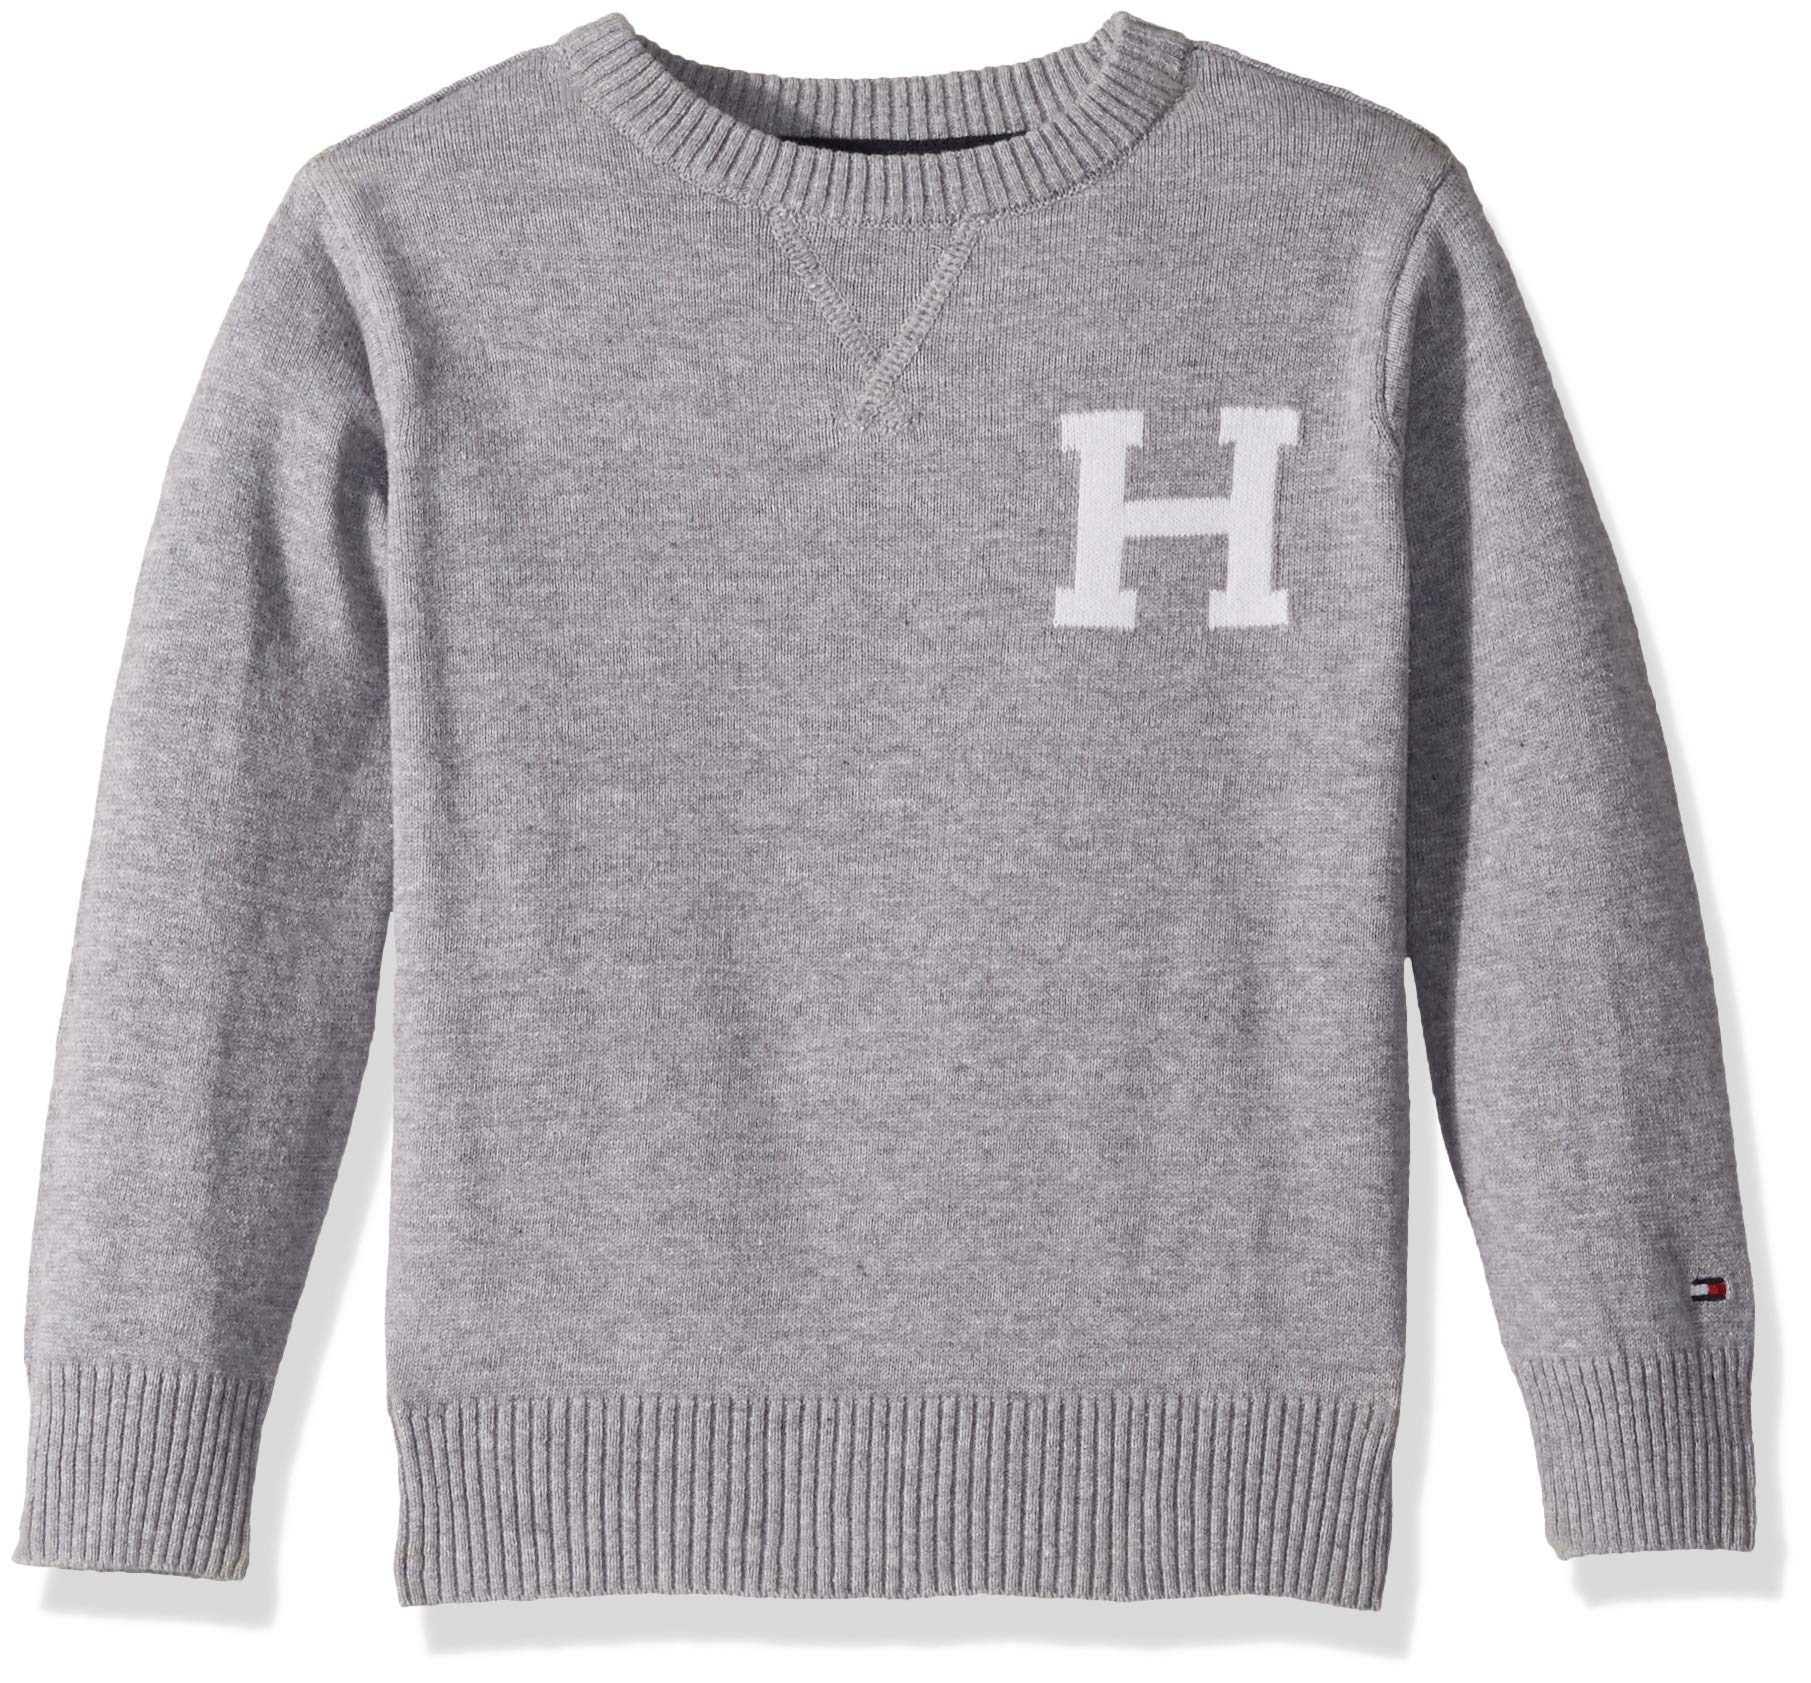 Tommy Hilfiger Toddler Boys' Long Sleeve Crew-Neck Sweater, Original Grey Heather 2T